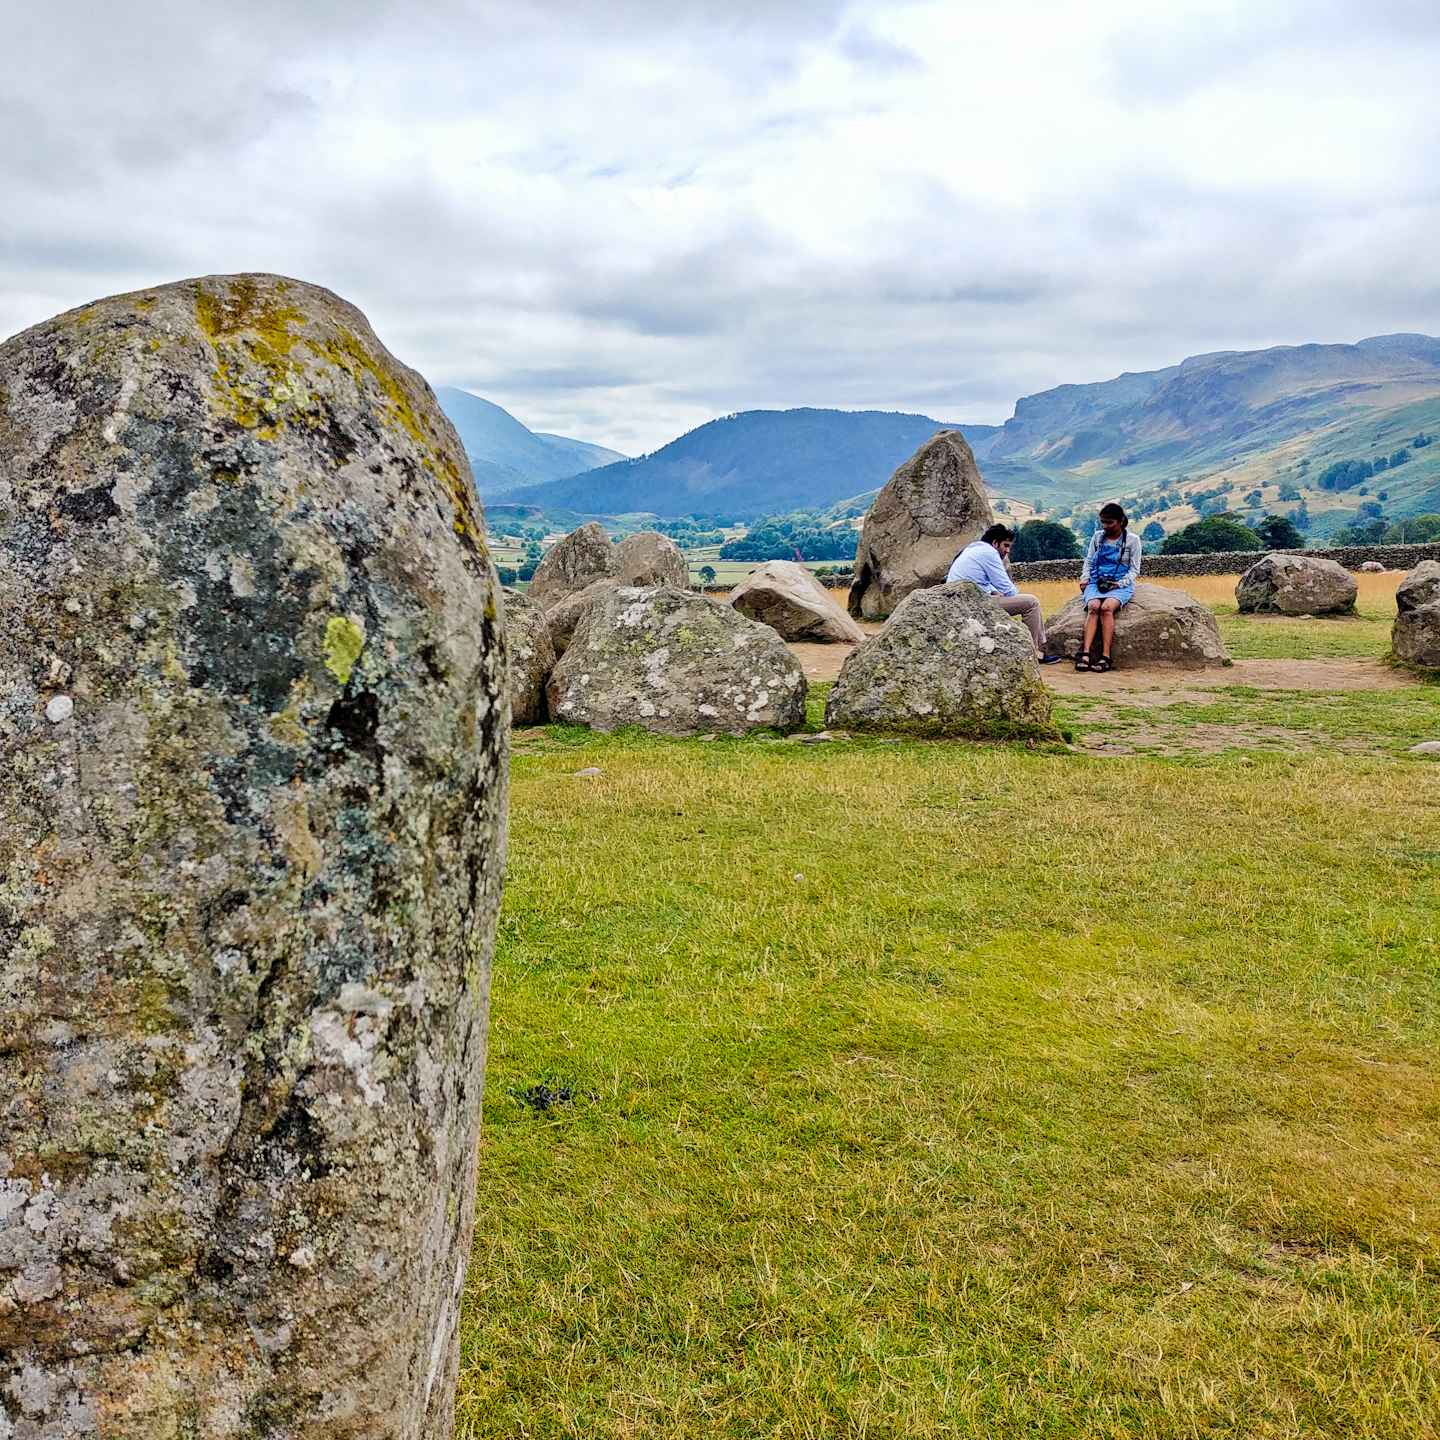 I only had my phone and 15 minutes, so how did I get some nice photos of Castlerigg Stone Circle in the Lake District? Photography tips and visitor info. Taking photos at Castlerigg Stone Circle in the Lake District on Falcondale Life blog. Image description: part of Castlerigg Stone Circle with visitors.